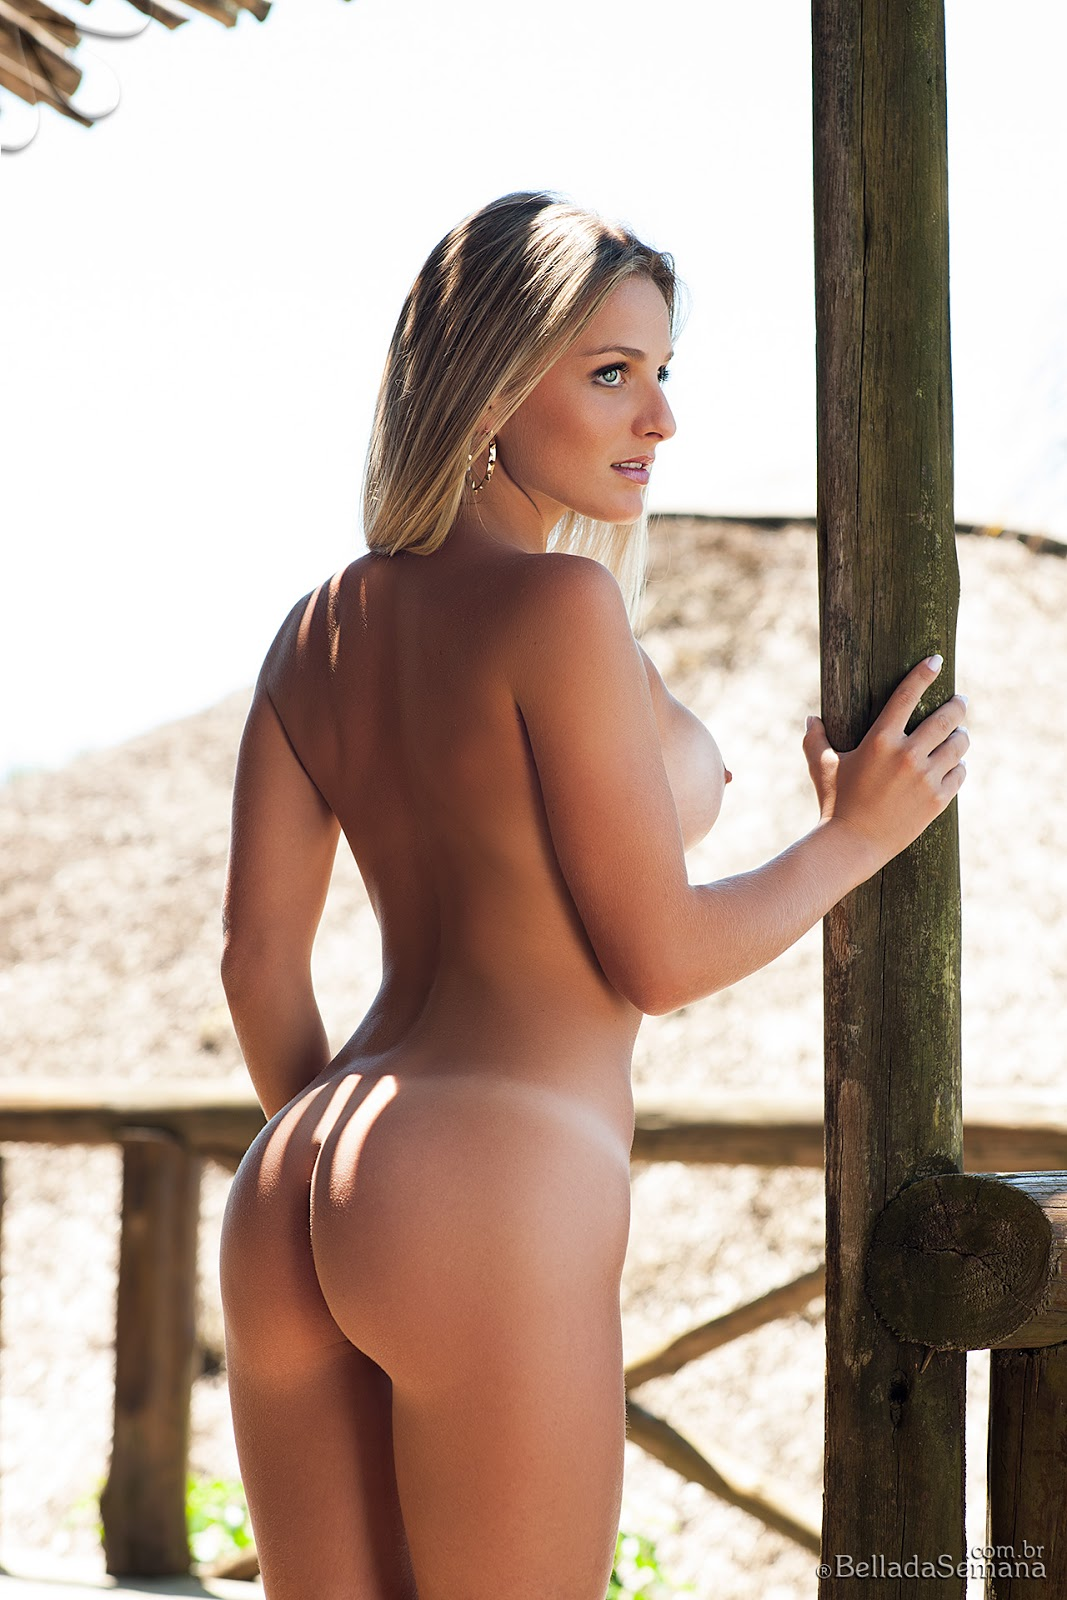 Ashley lawrence from naked